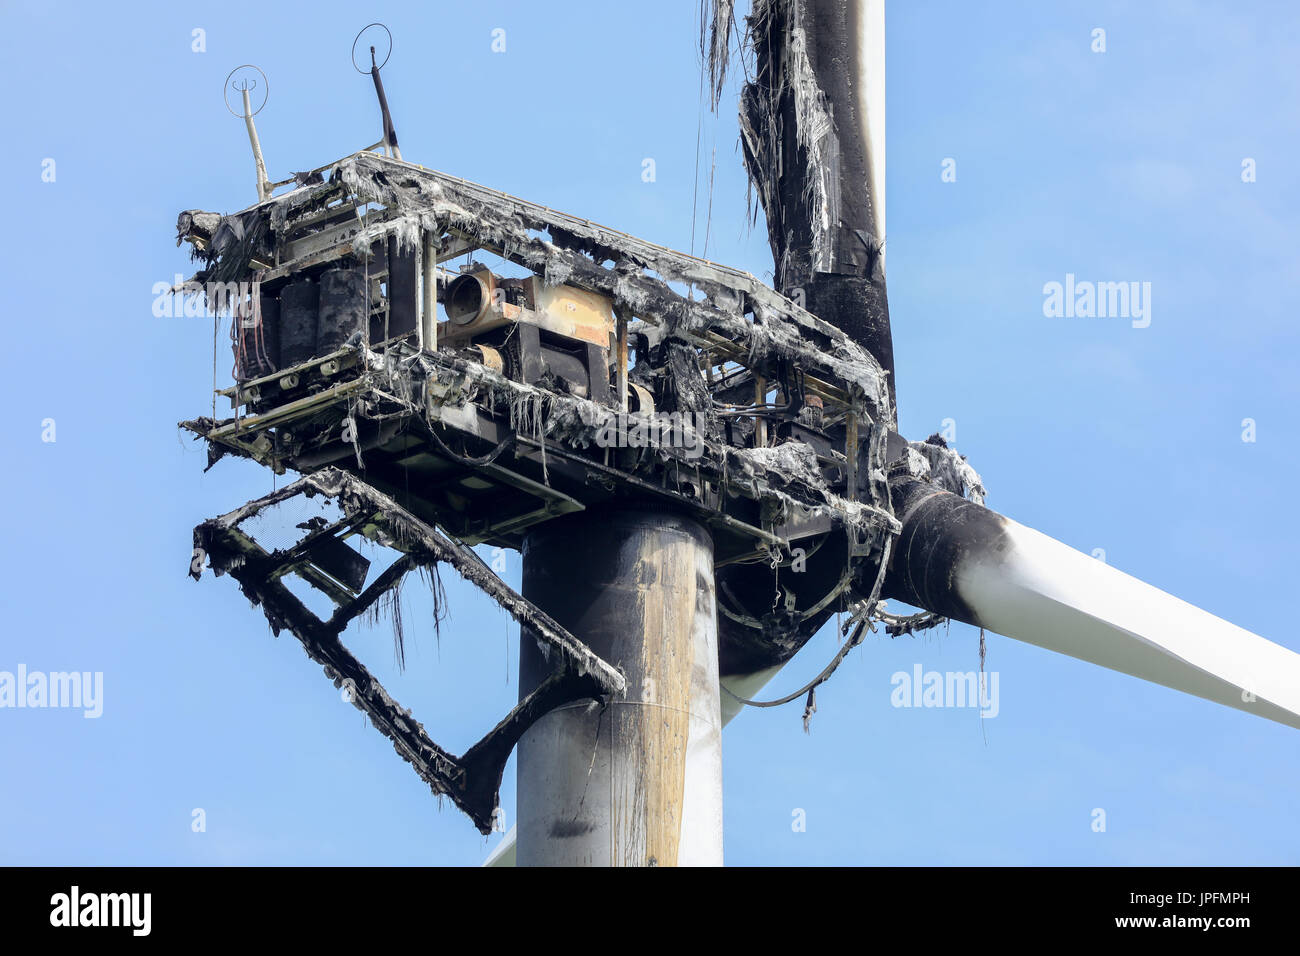 Kothen, Germany. 01st Aug, 2017. Picture of a burned wind turbine taken at a wind farm in Kothen, Germany, 01 August 2017. On Tuesday morning the fire department put off the falling, lit debris and allowed the turbine itself to burn out in a controlled manner. The cause of the fire is thought to be a strike of lightning (aerial shots taken with a drone). Photo: Jan Woitas/dpa-Zentralbild/ZB/dpa/Alamy Live News - Stock Image